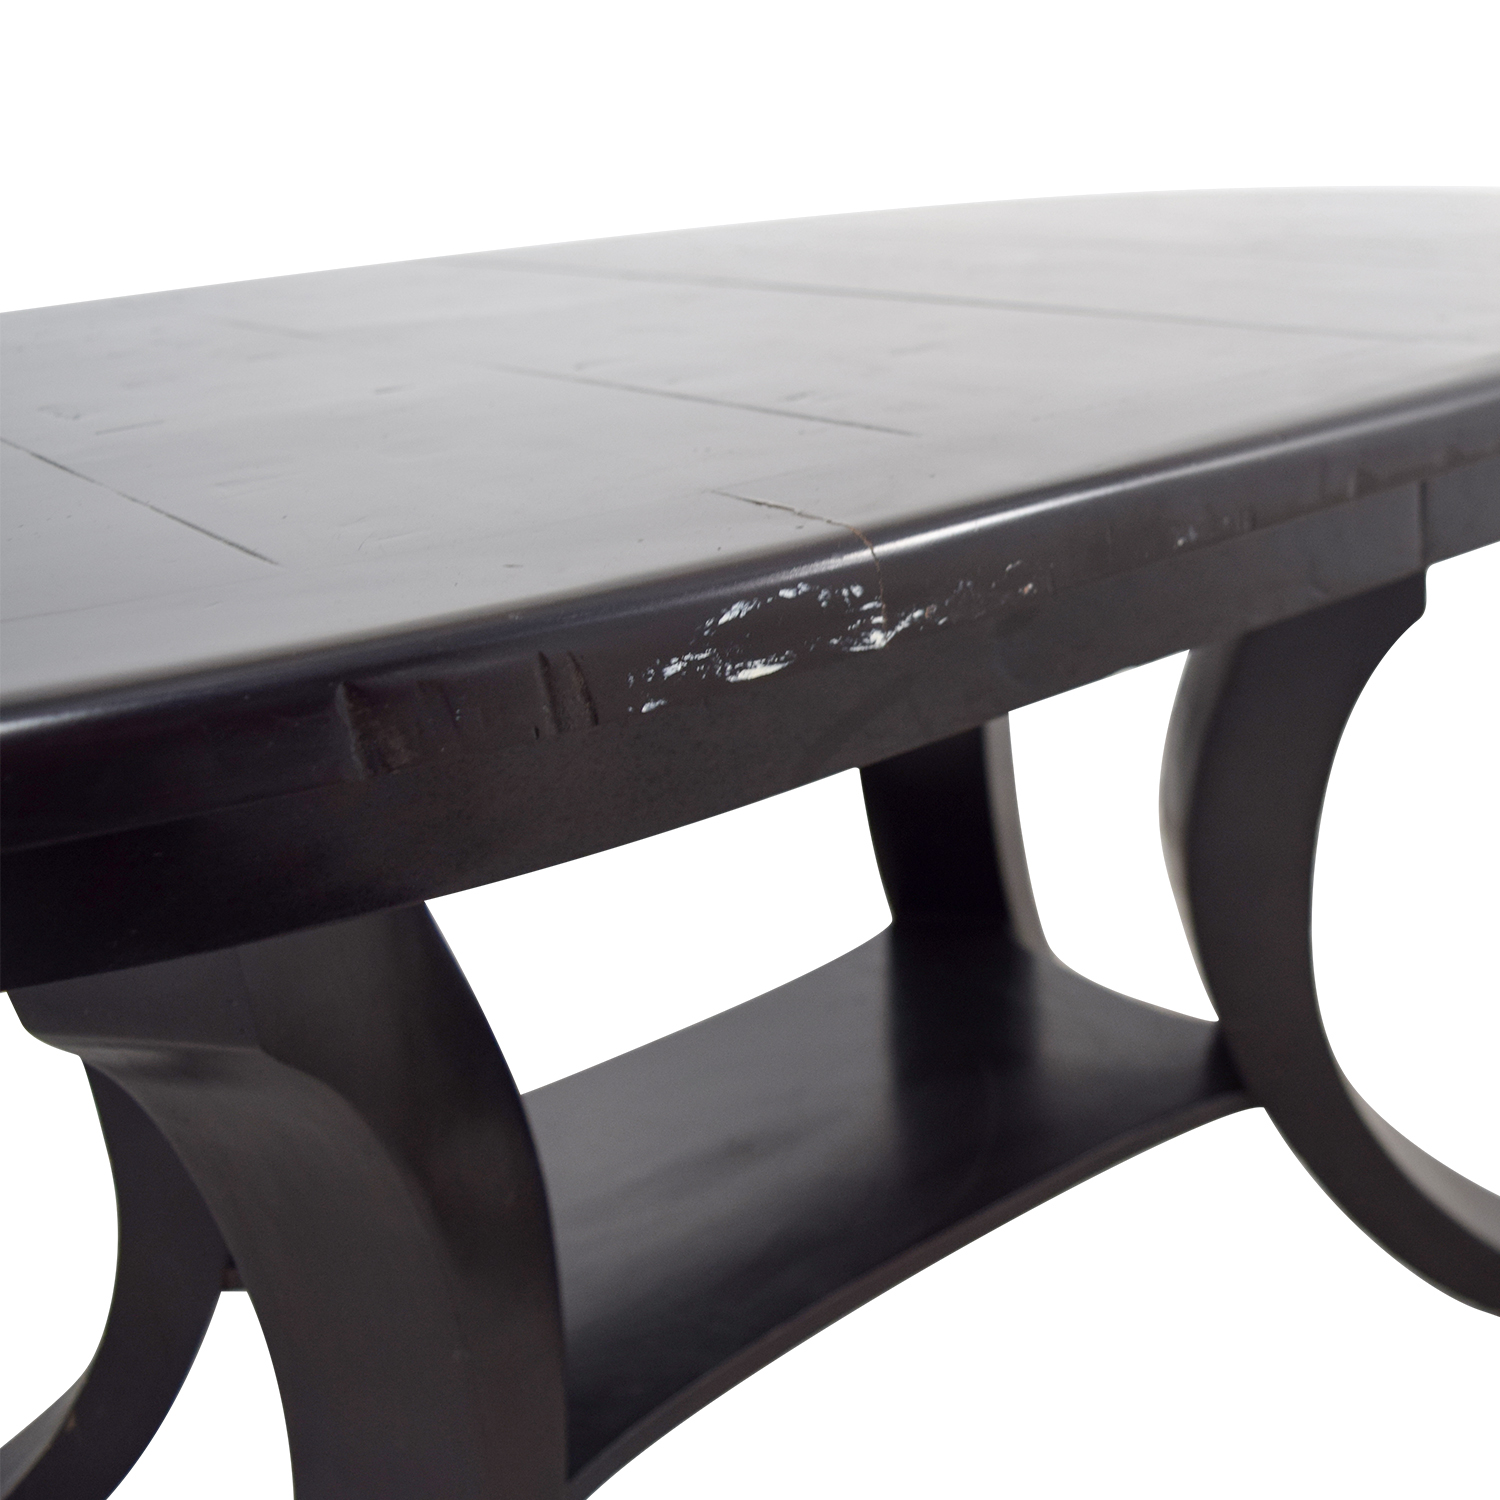 Furniture Masters Furniture Masters Oval Dining Table nj